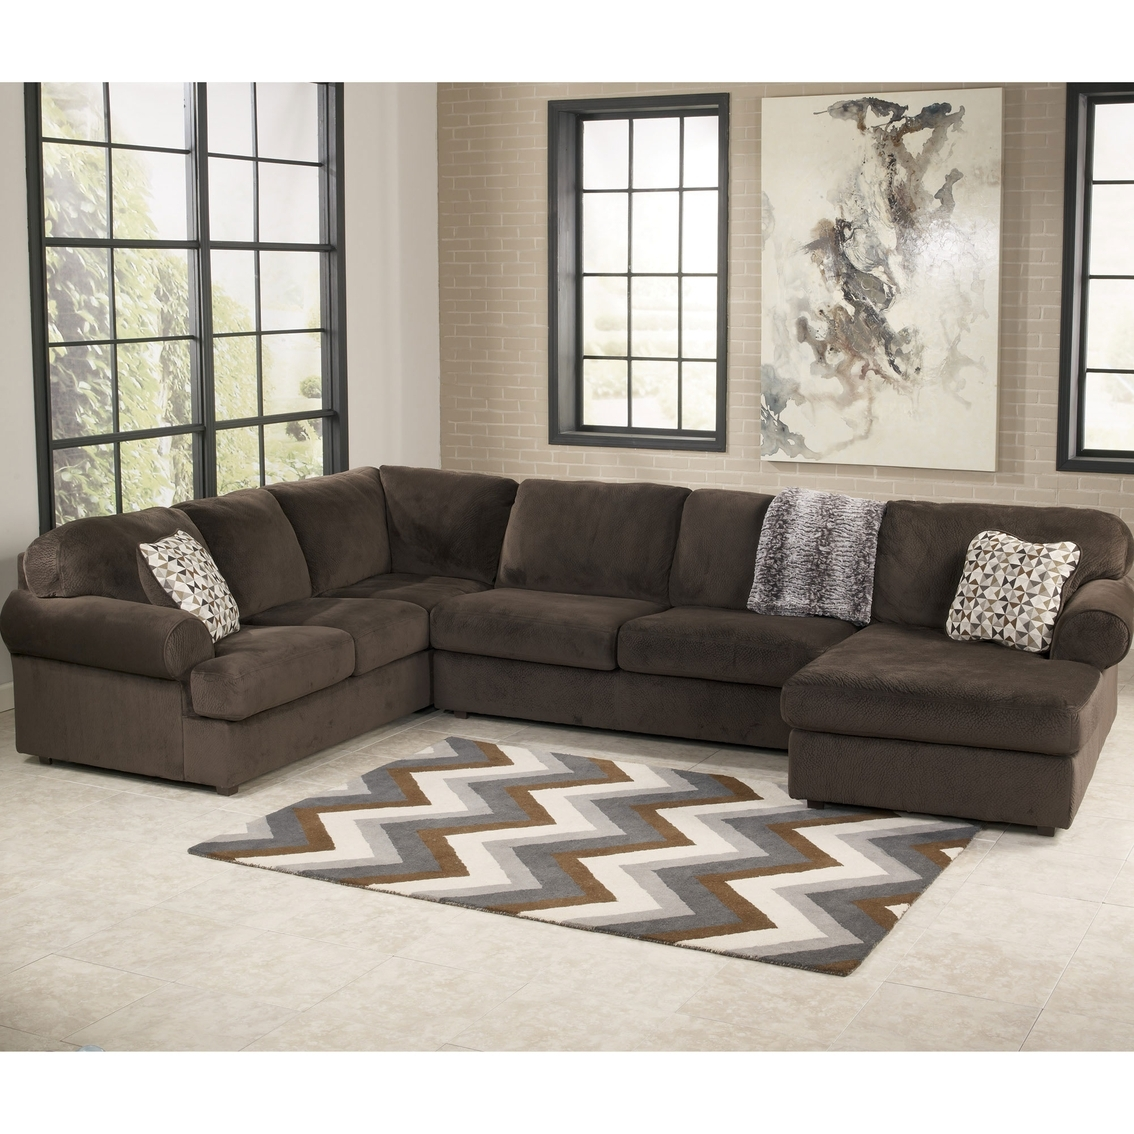 Signature Designashley Jessa Place 3 Pc. Sectional Sofa | Sofas for Austin Sectional Sofas (Image 8 of 10)